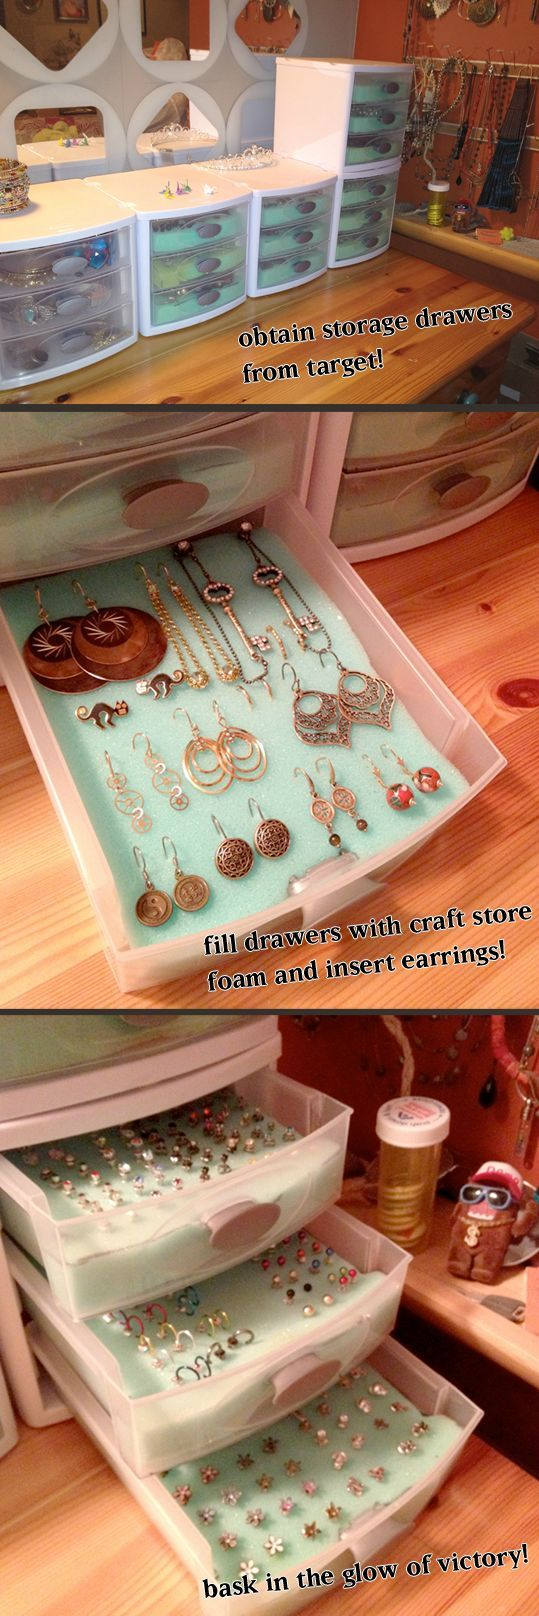 Storage idea for earrings. This is a great idea.